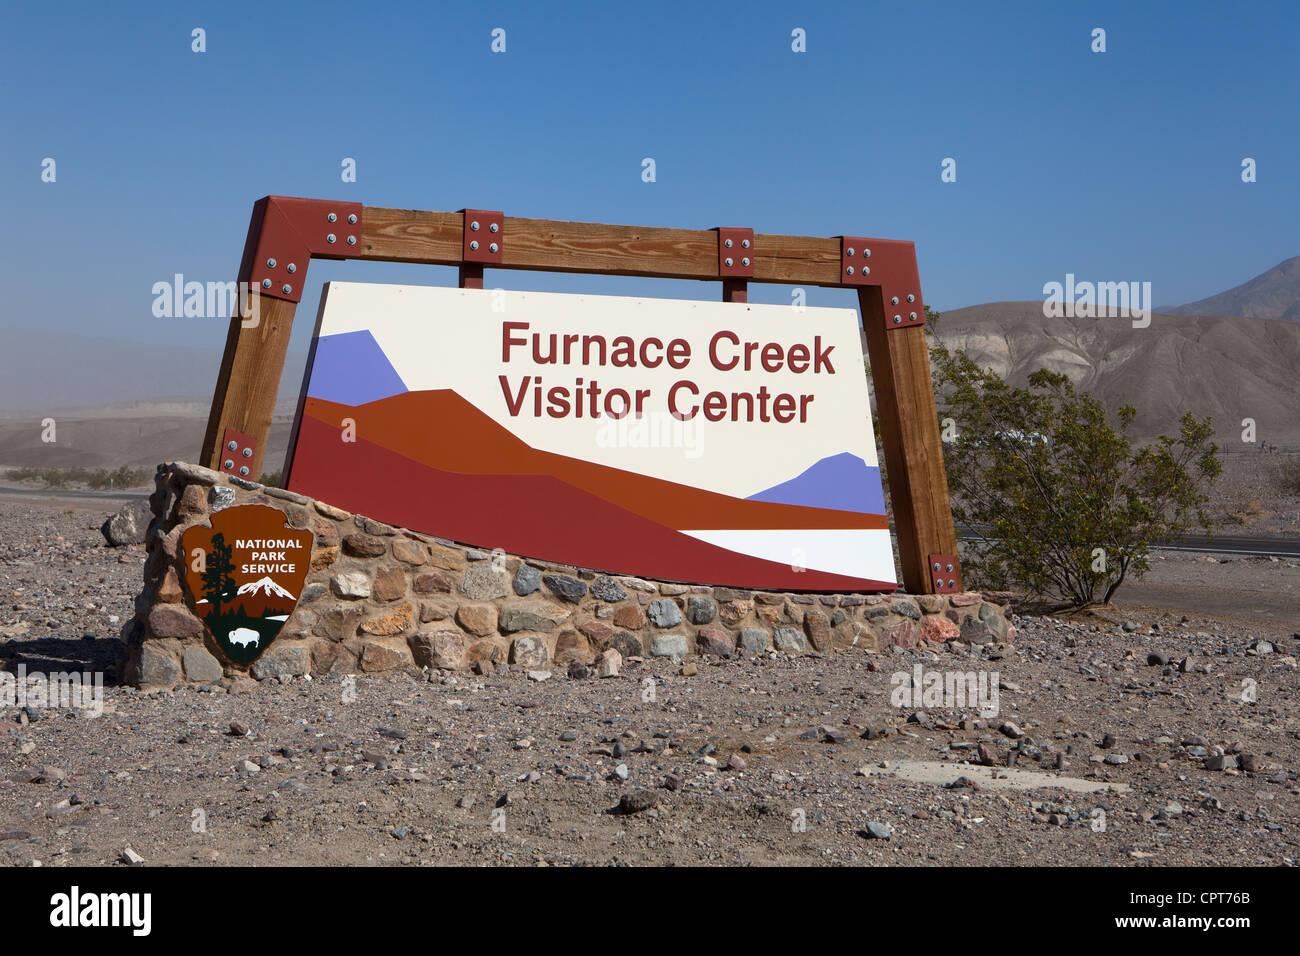 Furnace Creek Visitor Center Death Valley Stock Photo